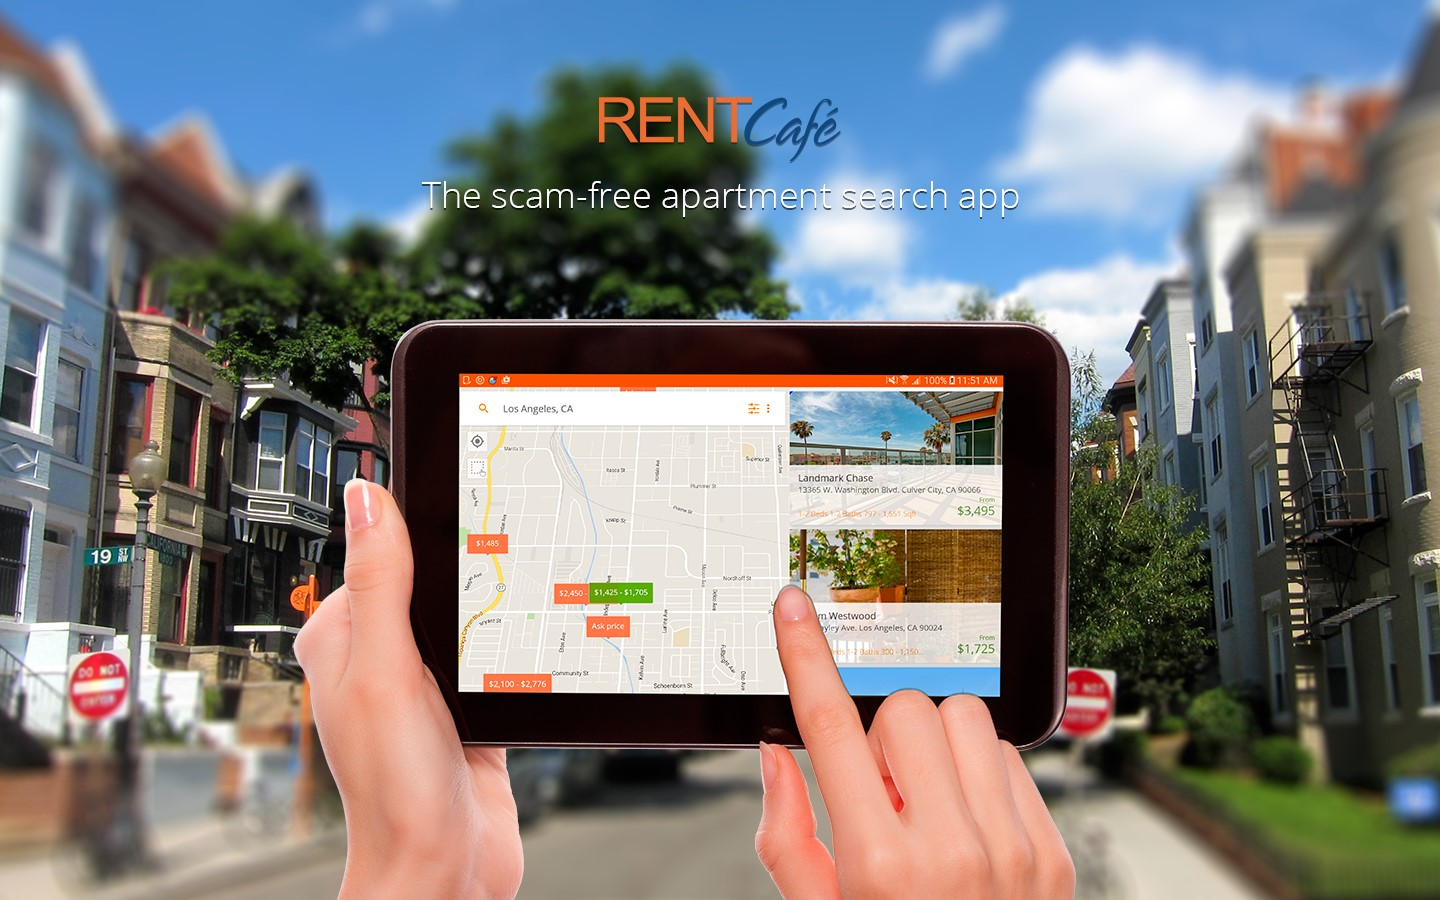 Renting Apartments Apartment Search App Rentcafé Mobile Apps